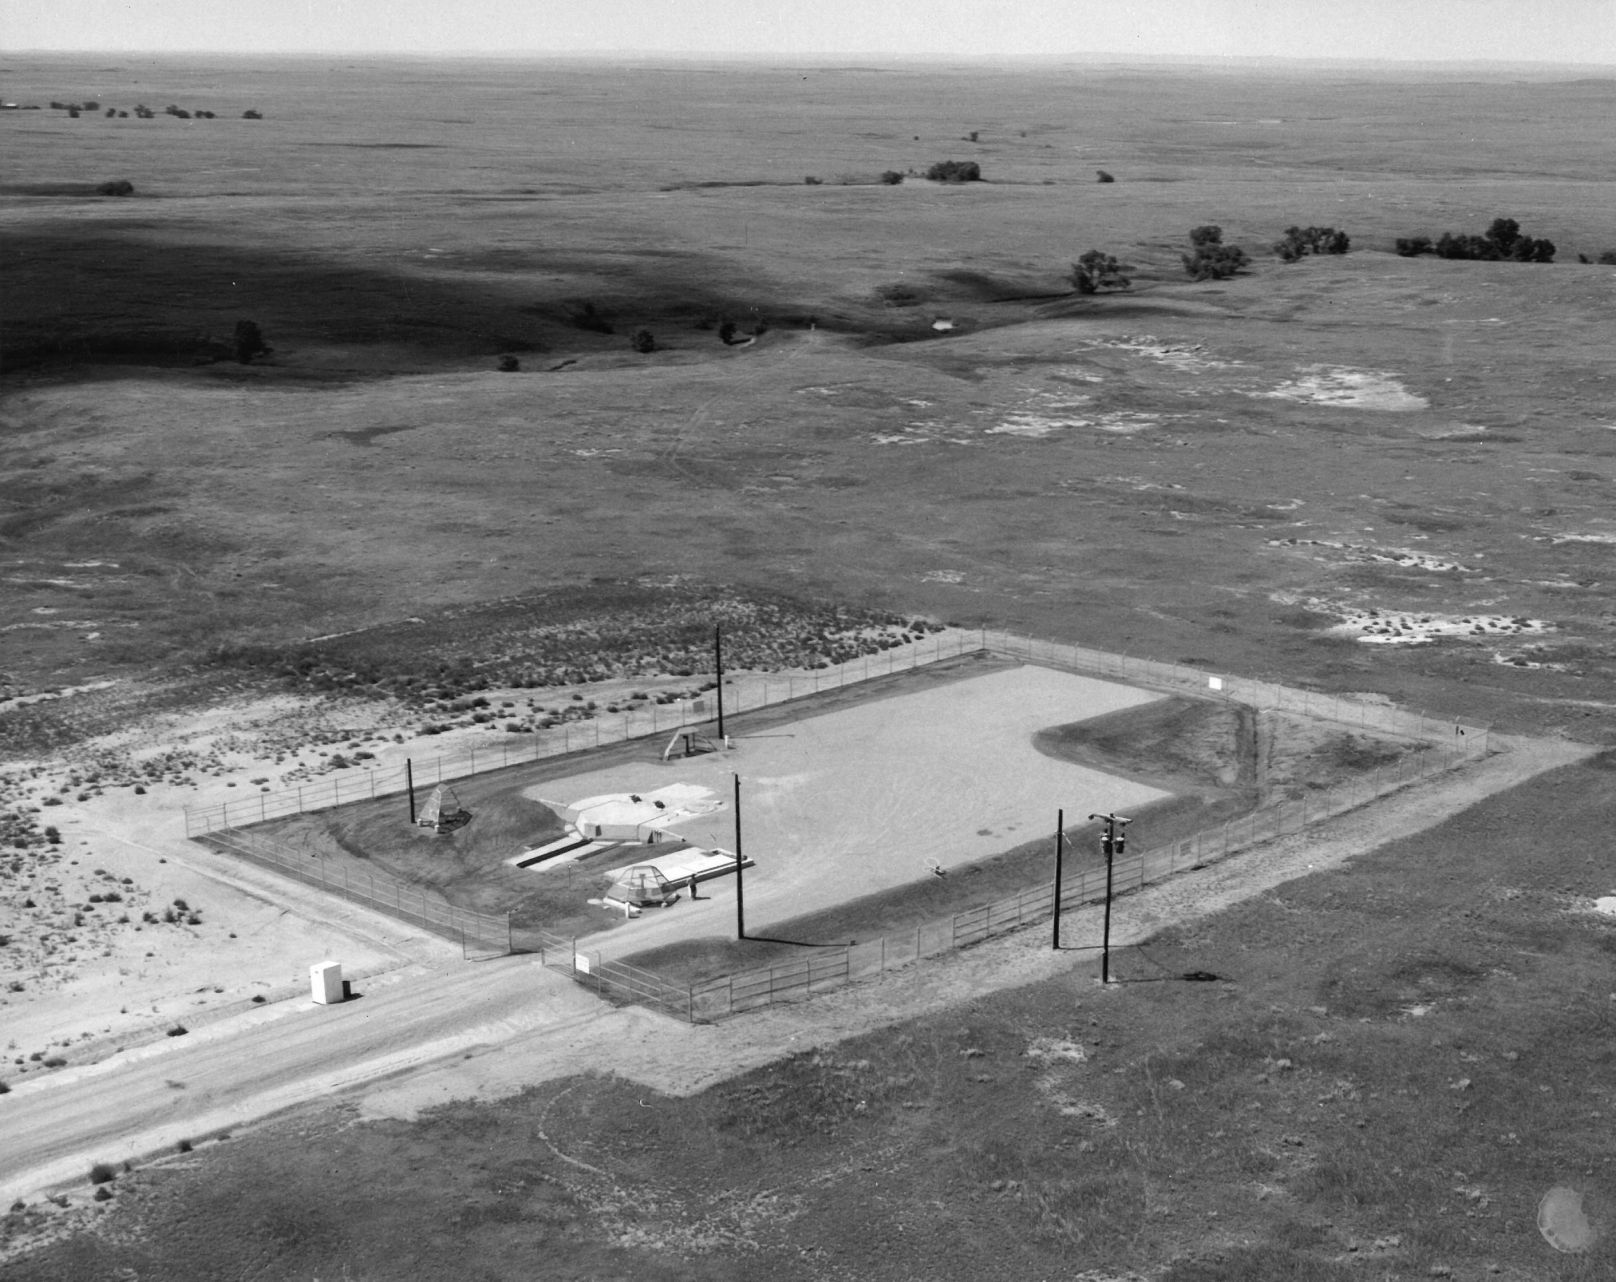 1963 aerial view of missile silo complex